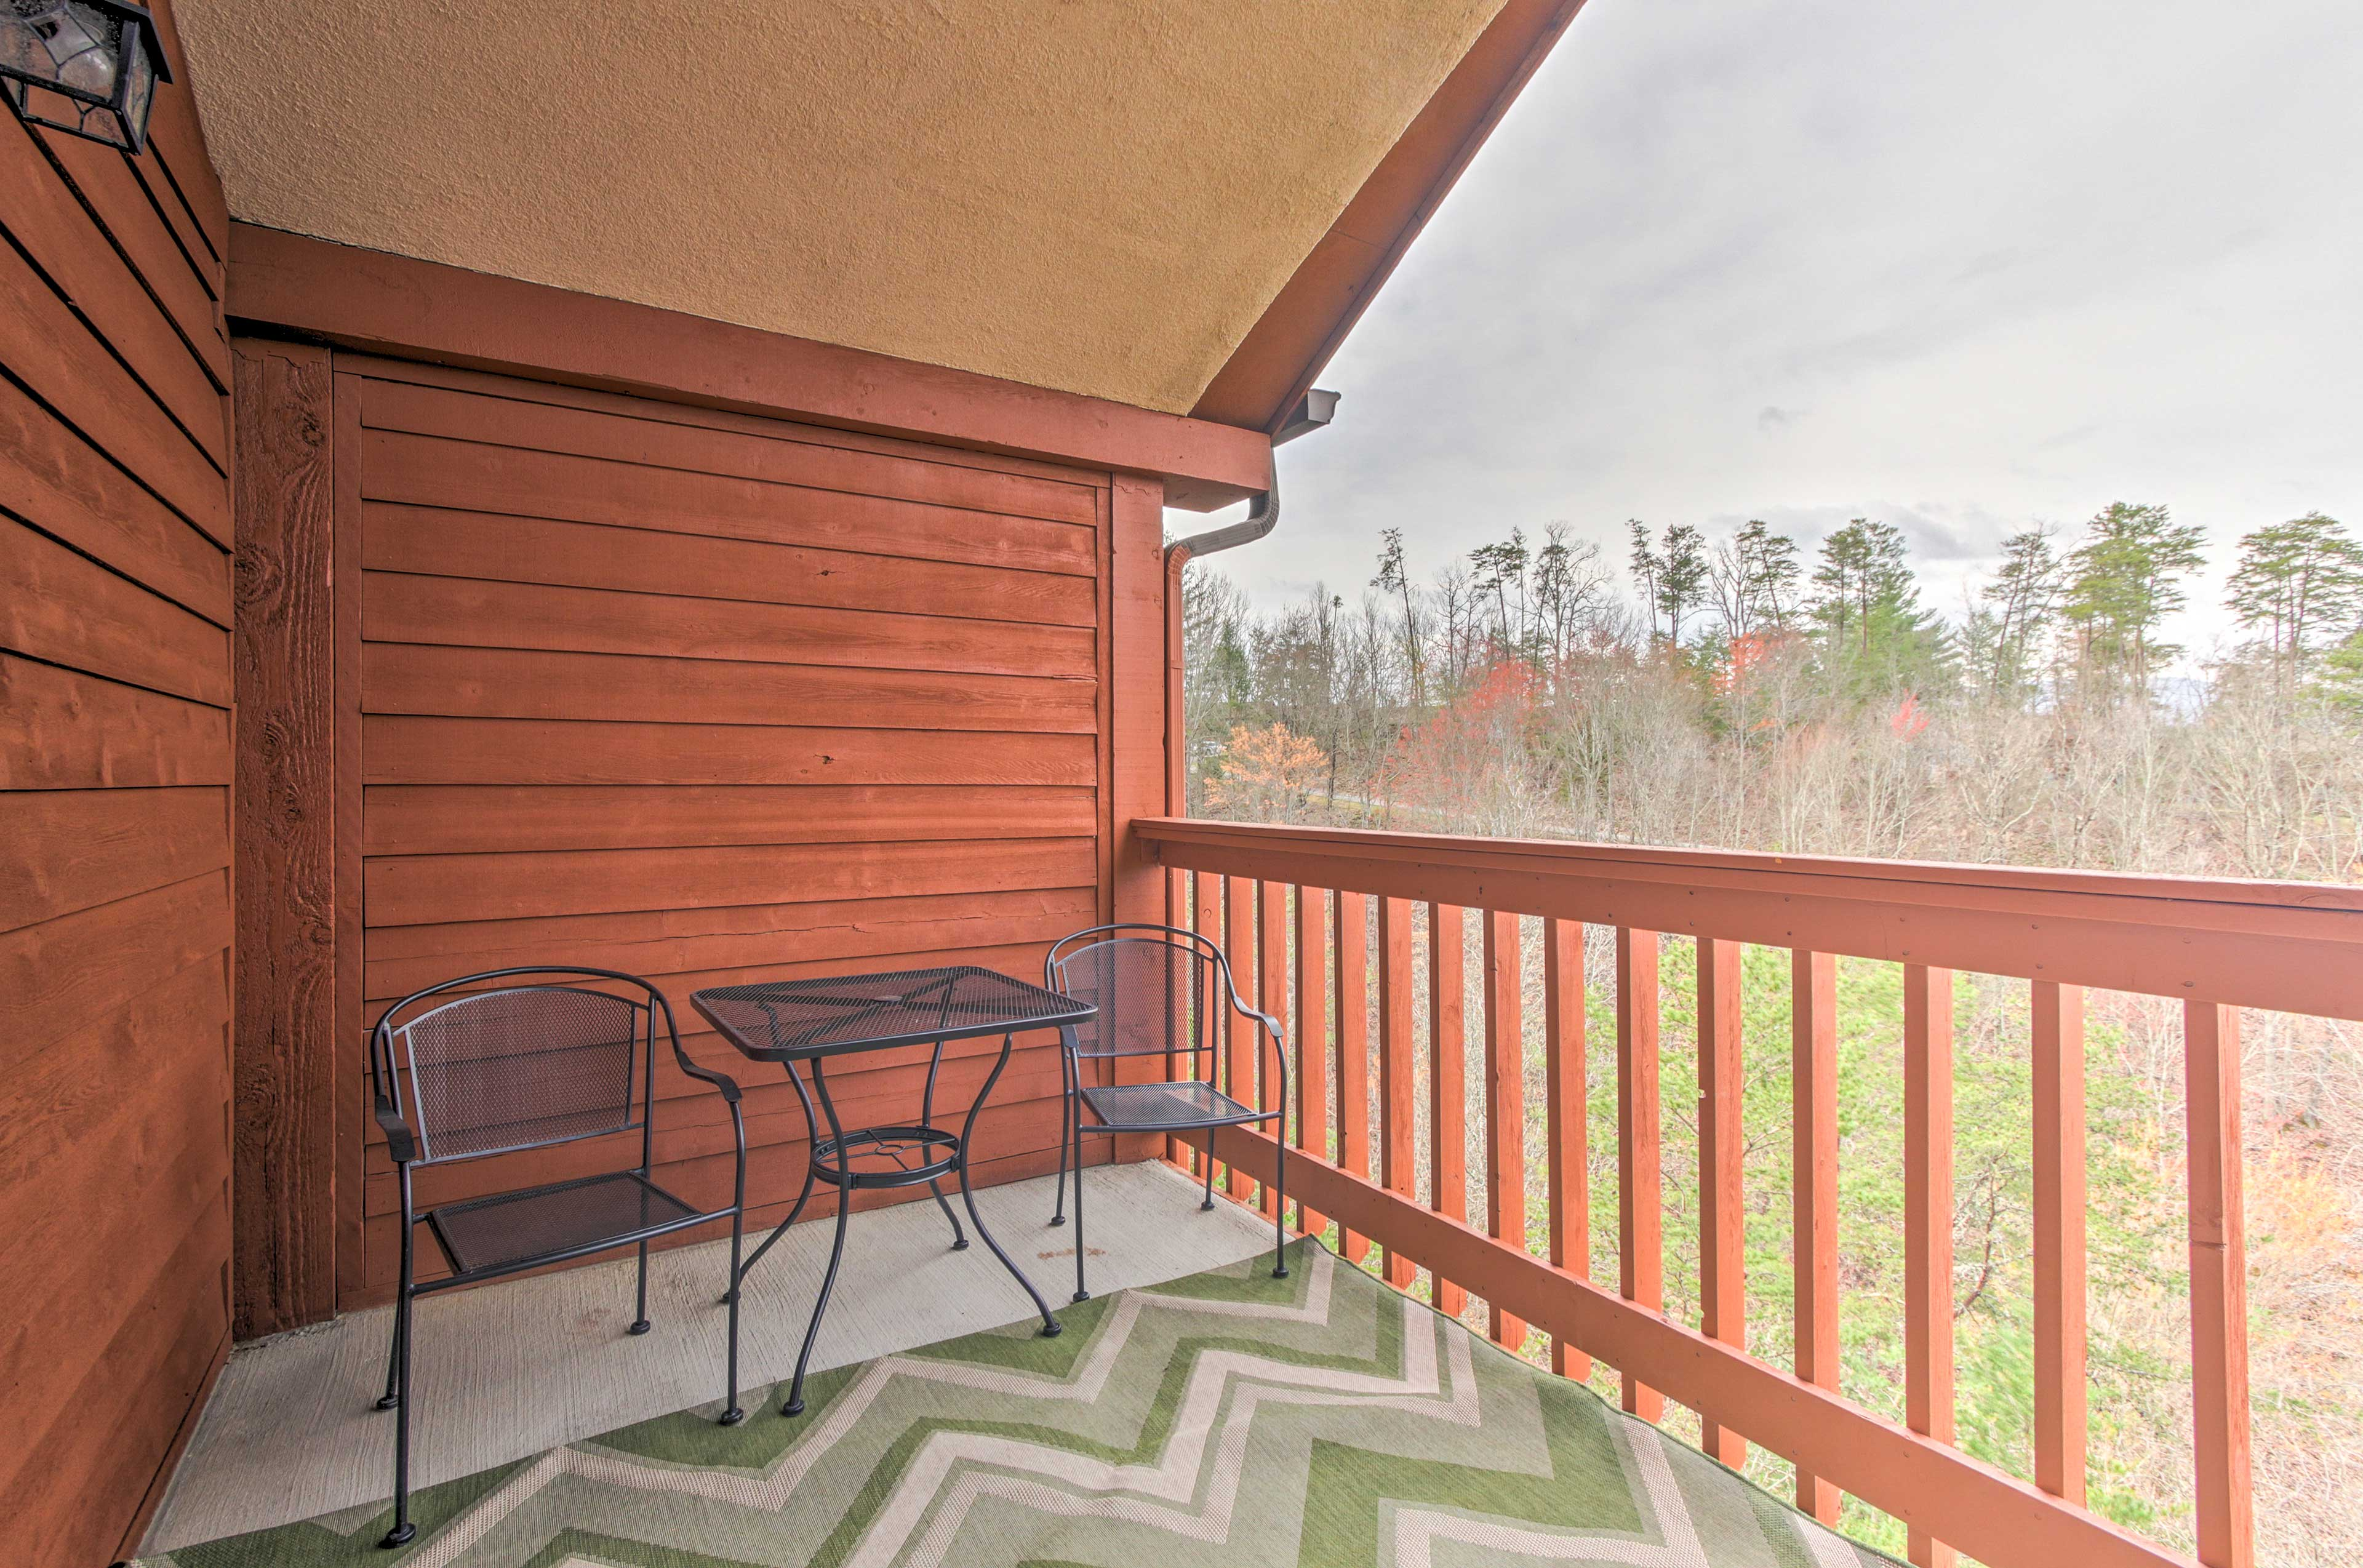 With 2 balconies, you'll never run out of space to enjoy the views.